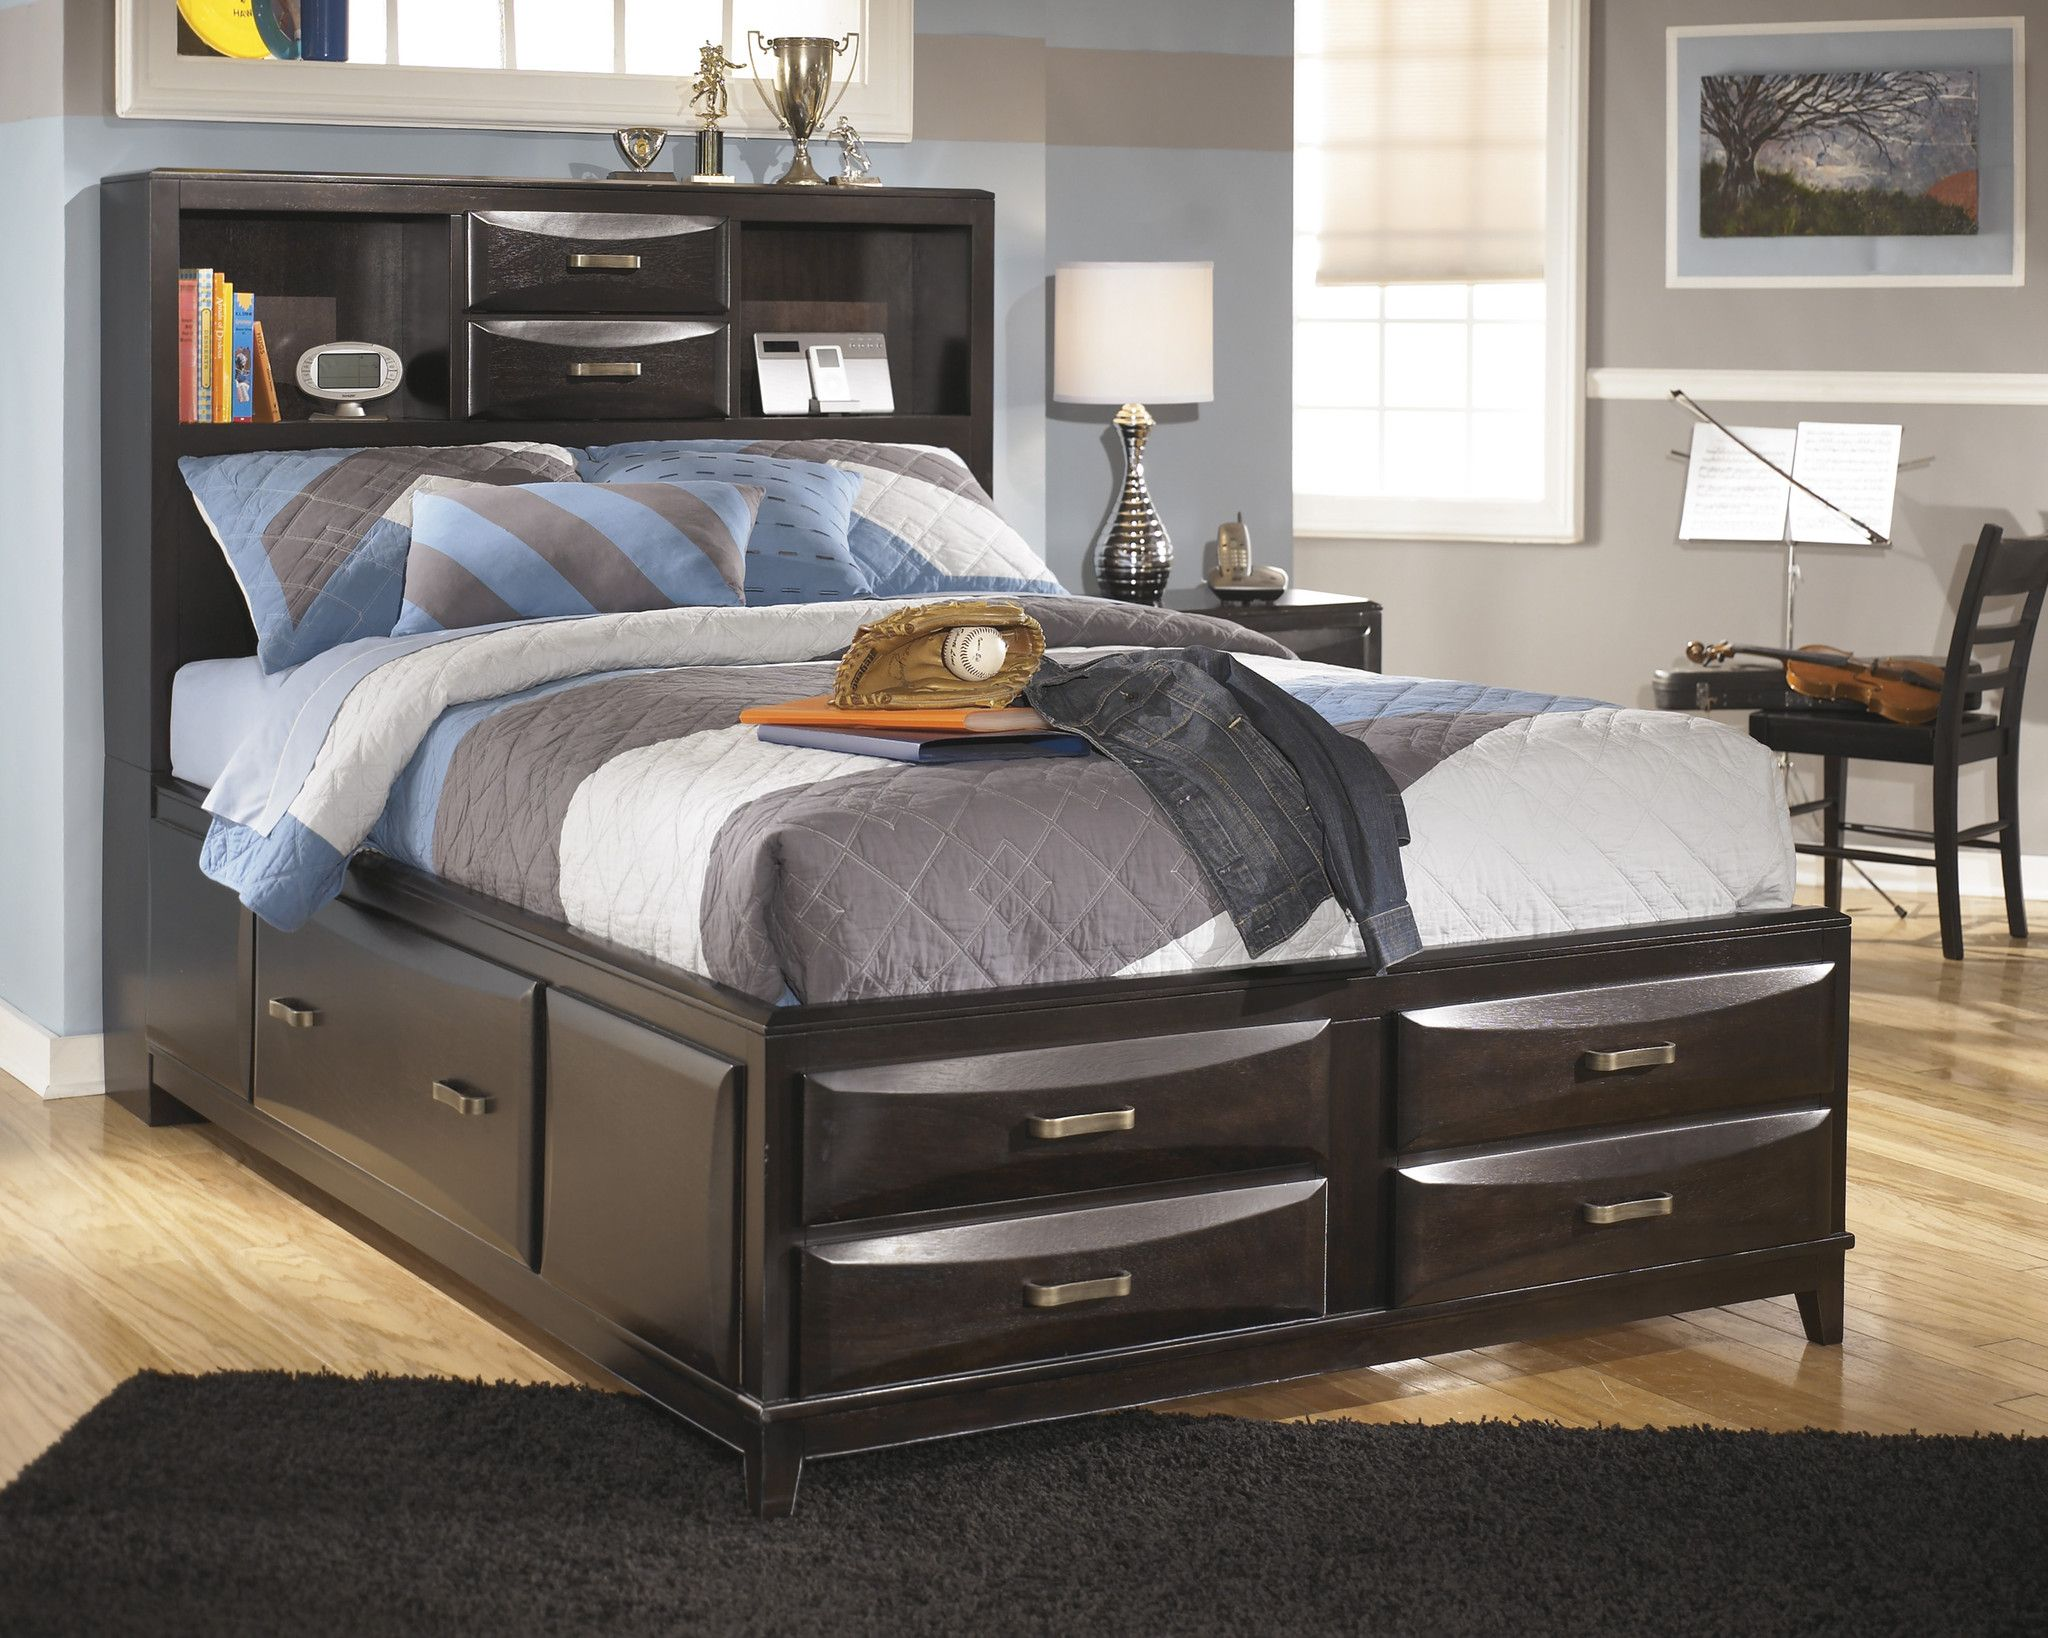 Kira Youth Full Storage Bed Full bed with storage, Bed